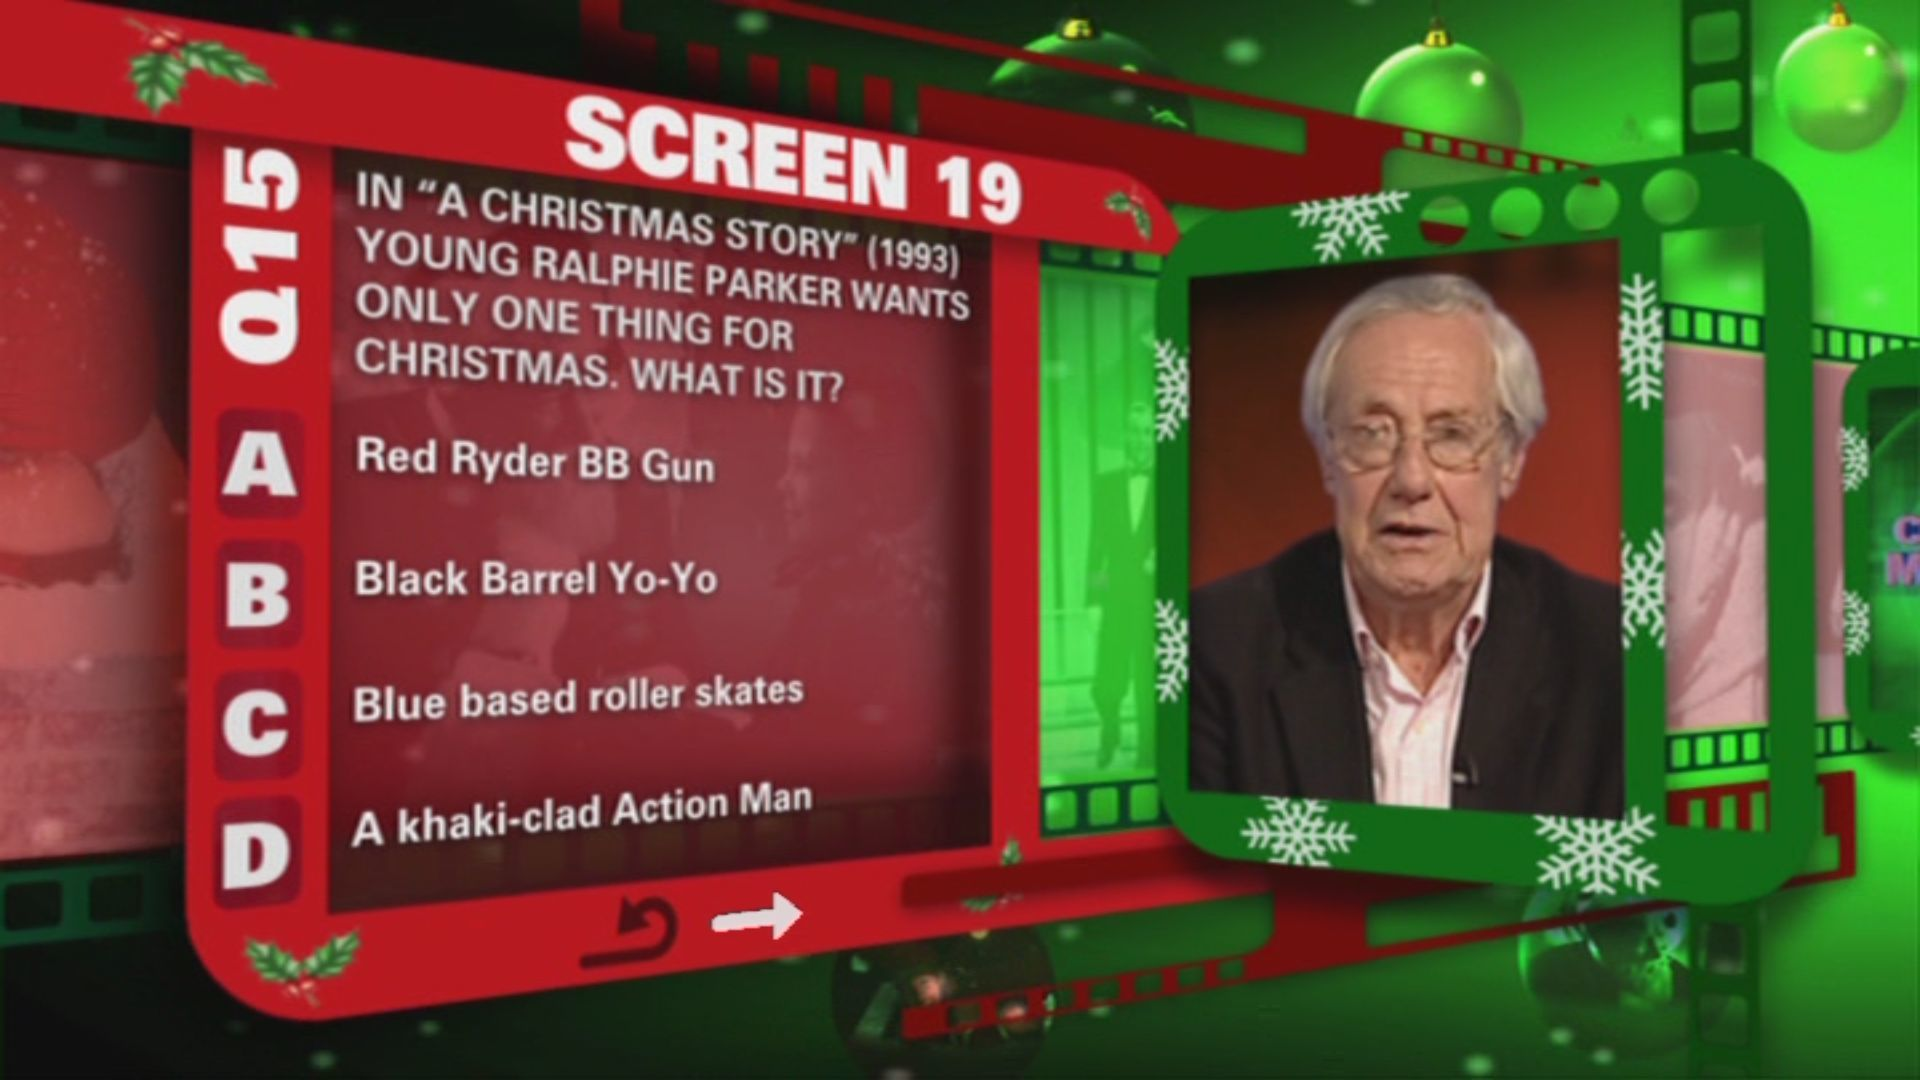 A Christmas Story Quizzes.Barry Norman S Christmas Movie Quiz Screenshots For Dvd